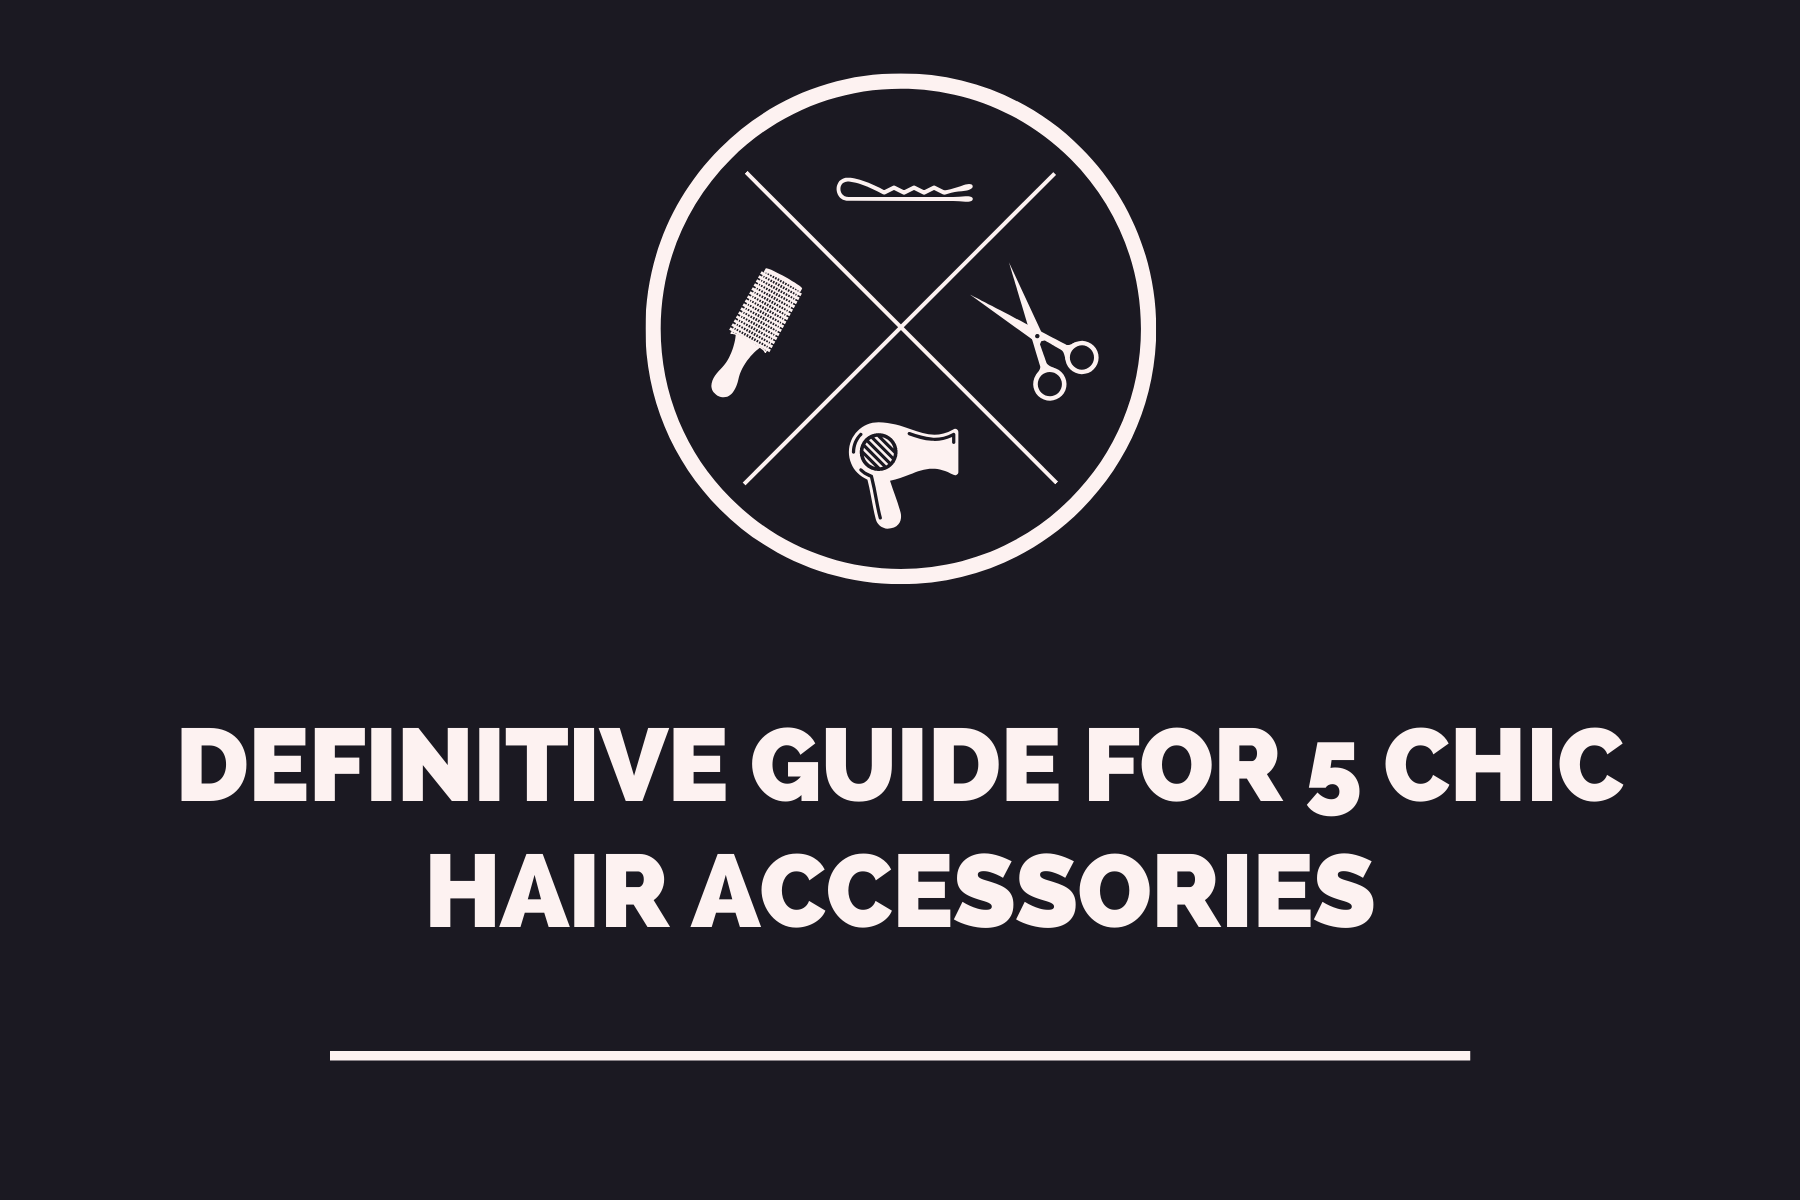 Definitive Guide for 5 Chic Hair Accessories